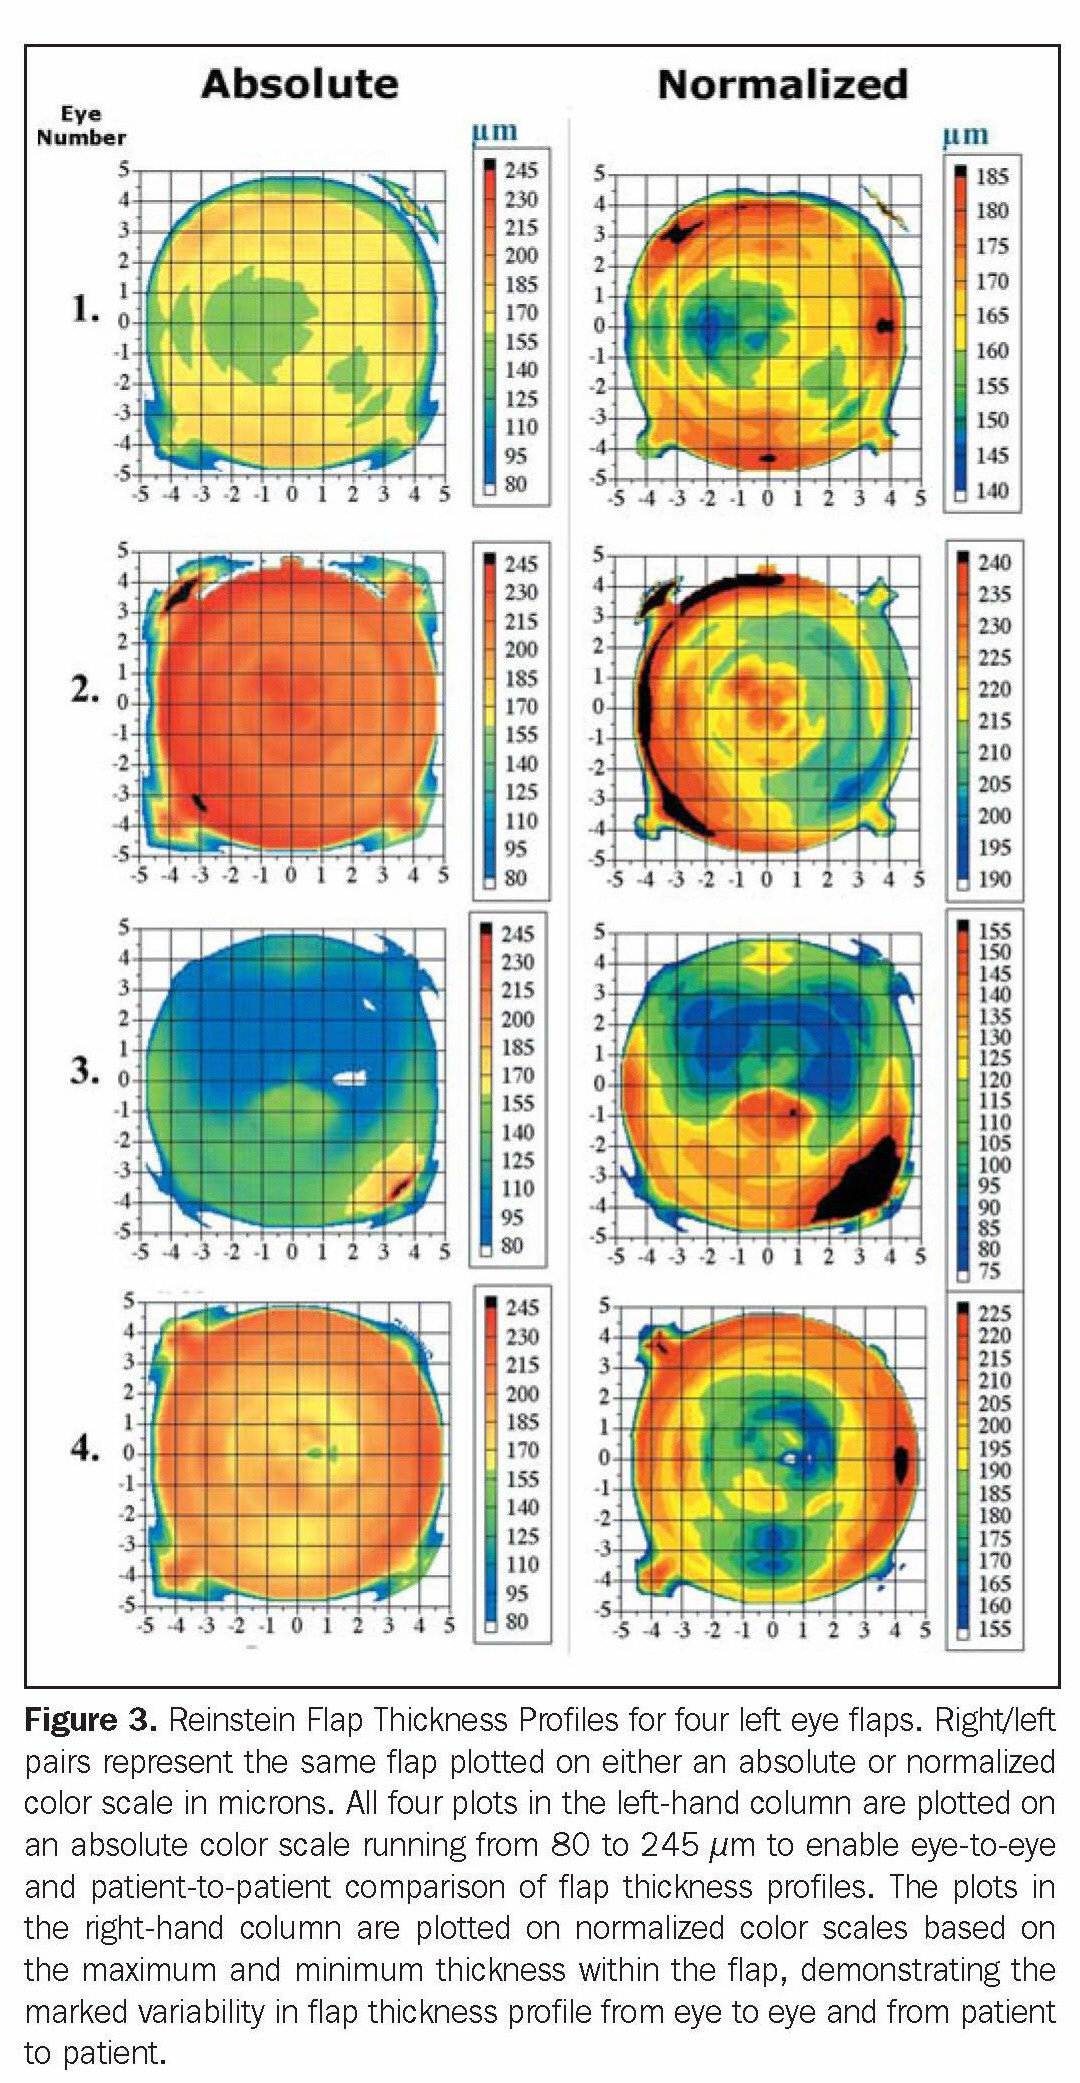 Figure 3. Reinstein Flap Thickness Profiles for four left eye flaps. Right/left pairs represent the same flap plotted on either an absolute or normalized color scale in microns. All four plots in the left-hand column are plotted on an absolute color scale running from 80 to 245 µm to enable eye-to-eye and patient-to- patient comparison of flap thickness profiles. The plots in the right-hand column are plotted on normalized color scales based on the maximum and minimum thickness within the flap, demonstrating the marked variability in flap thickness profile from eye to eye and from patient to patient.